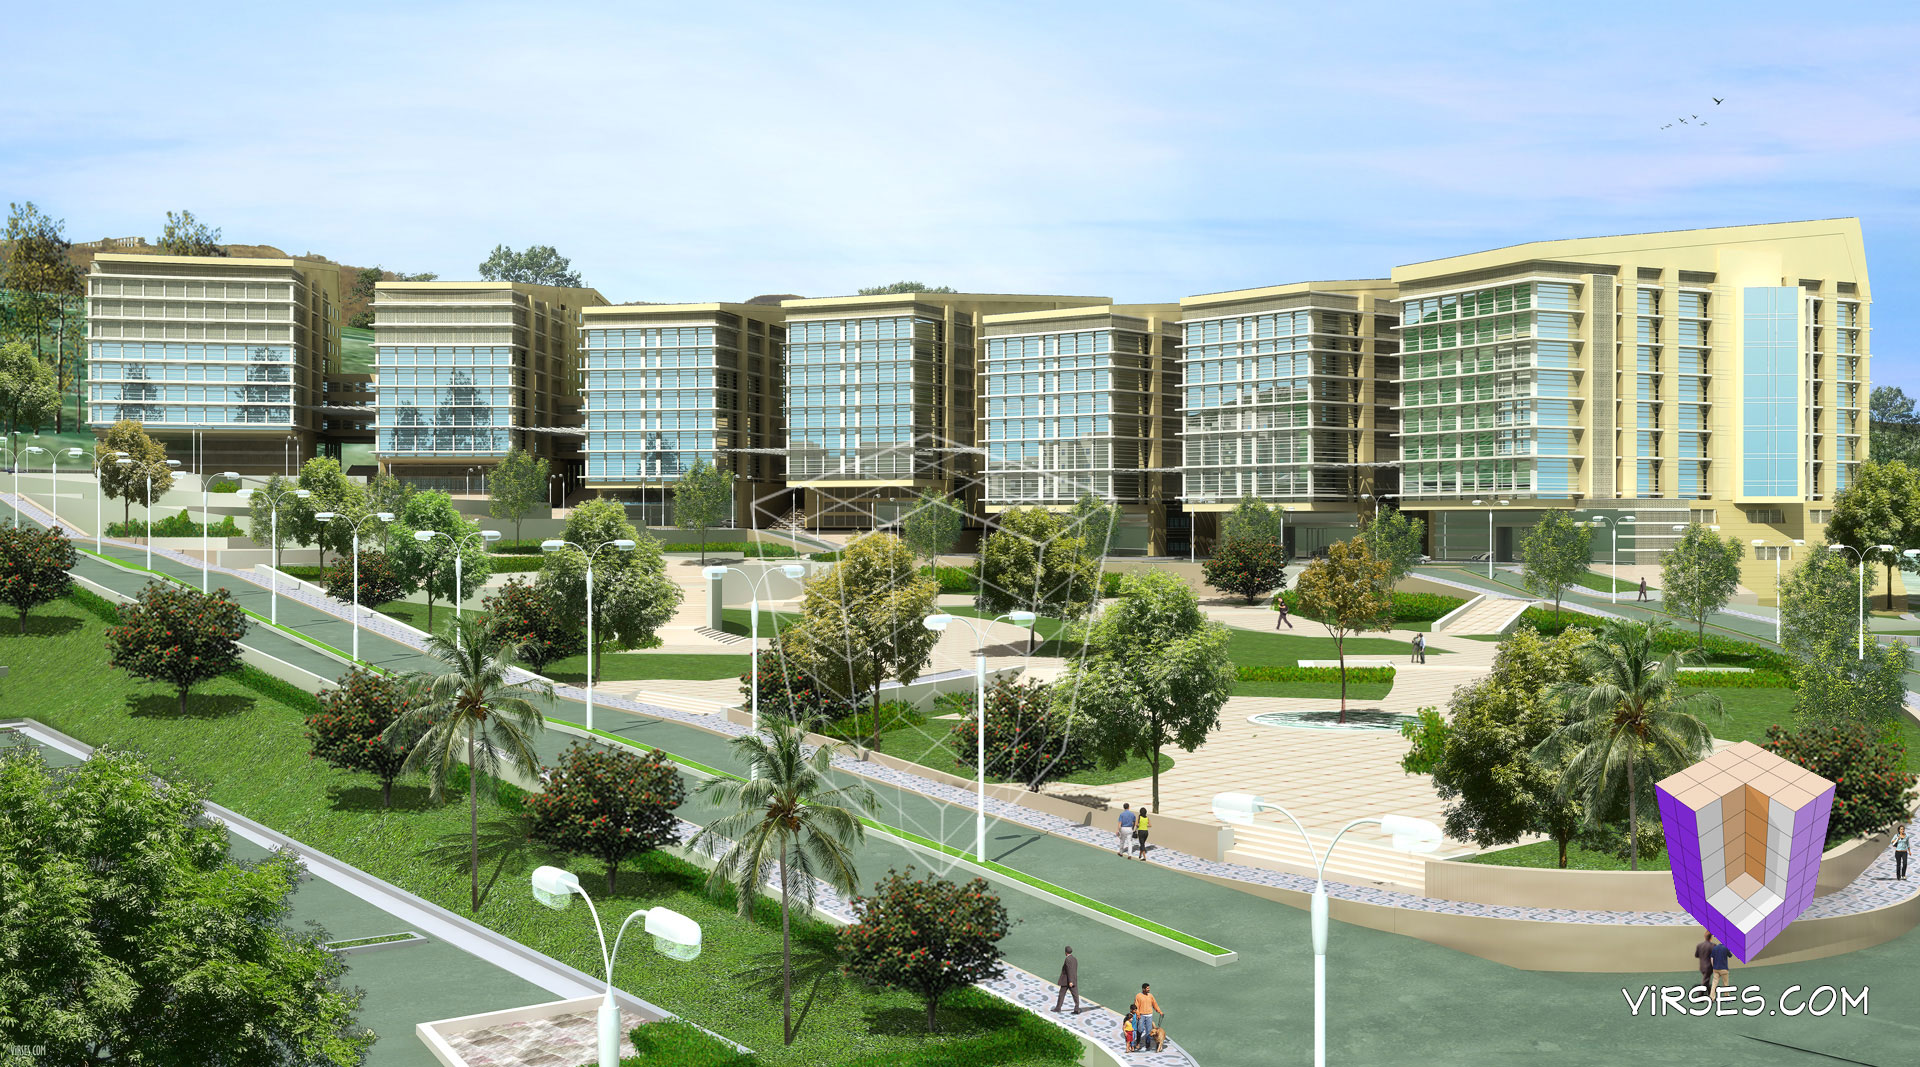 3d architectural rendering for a hospital complex